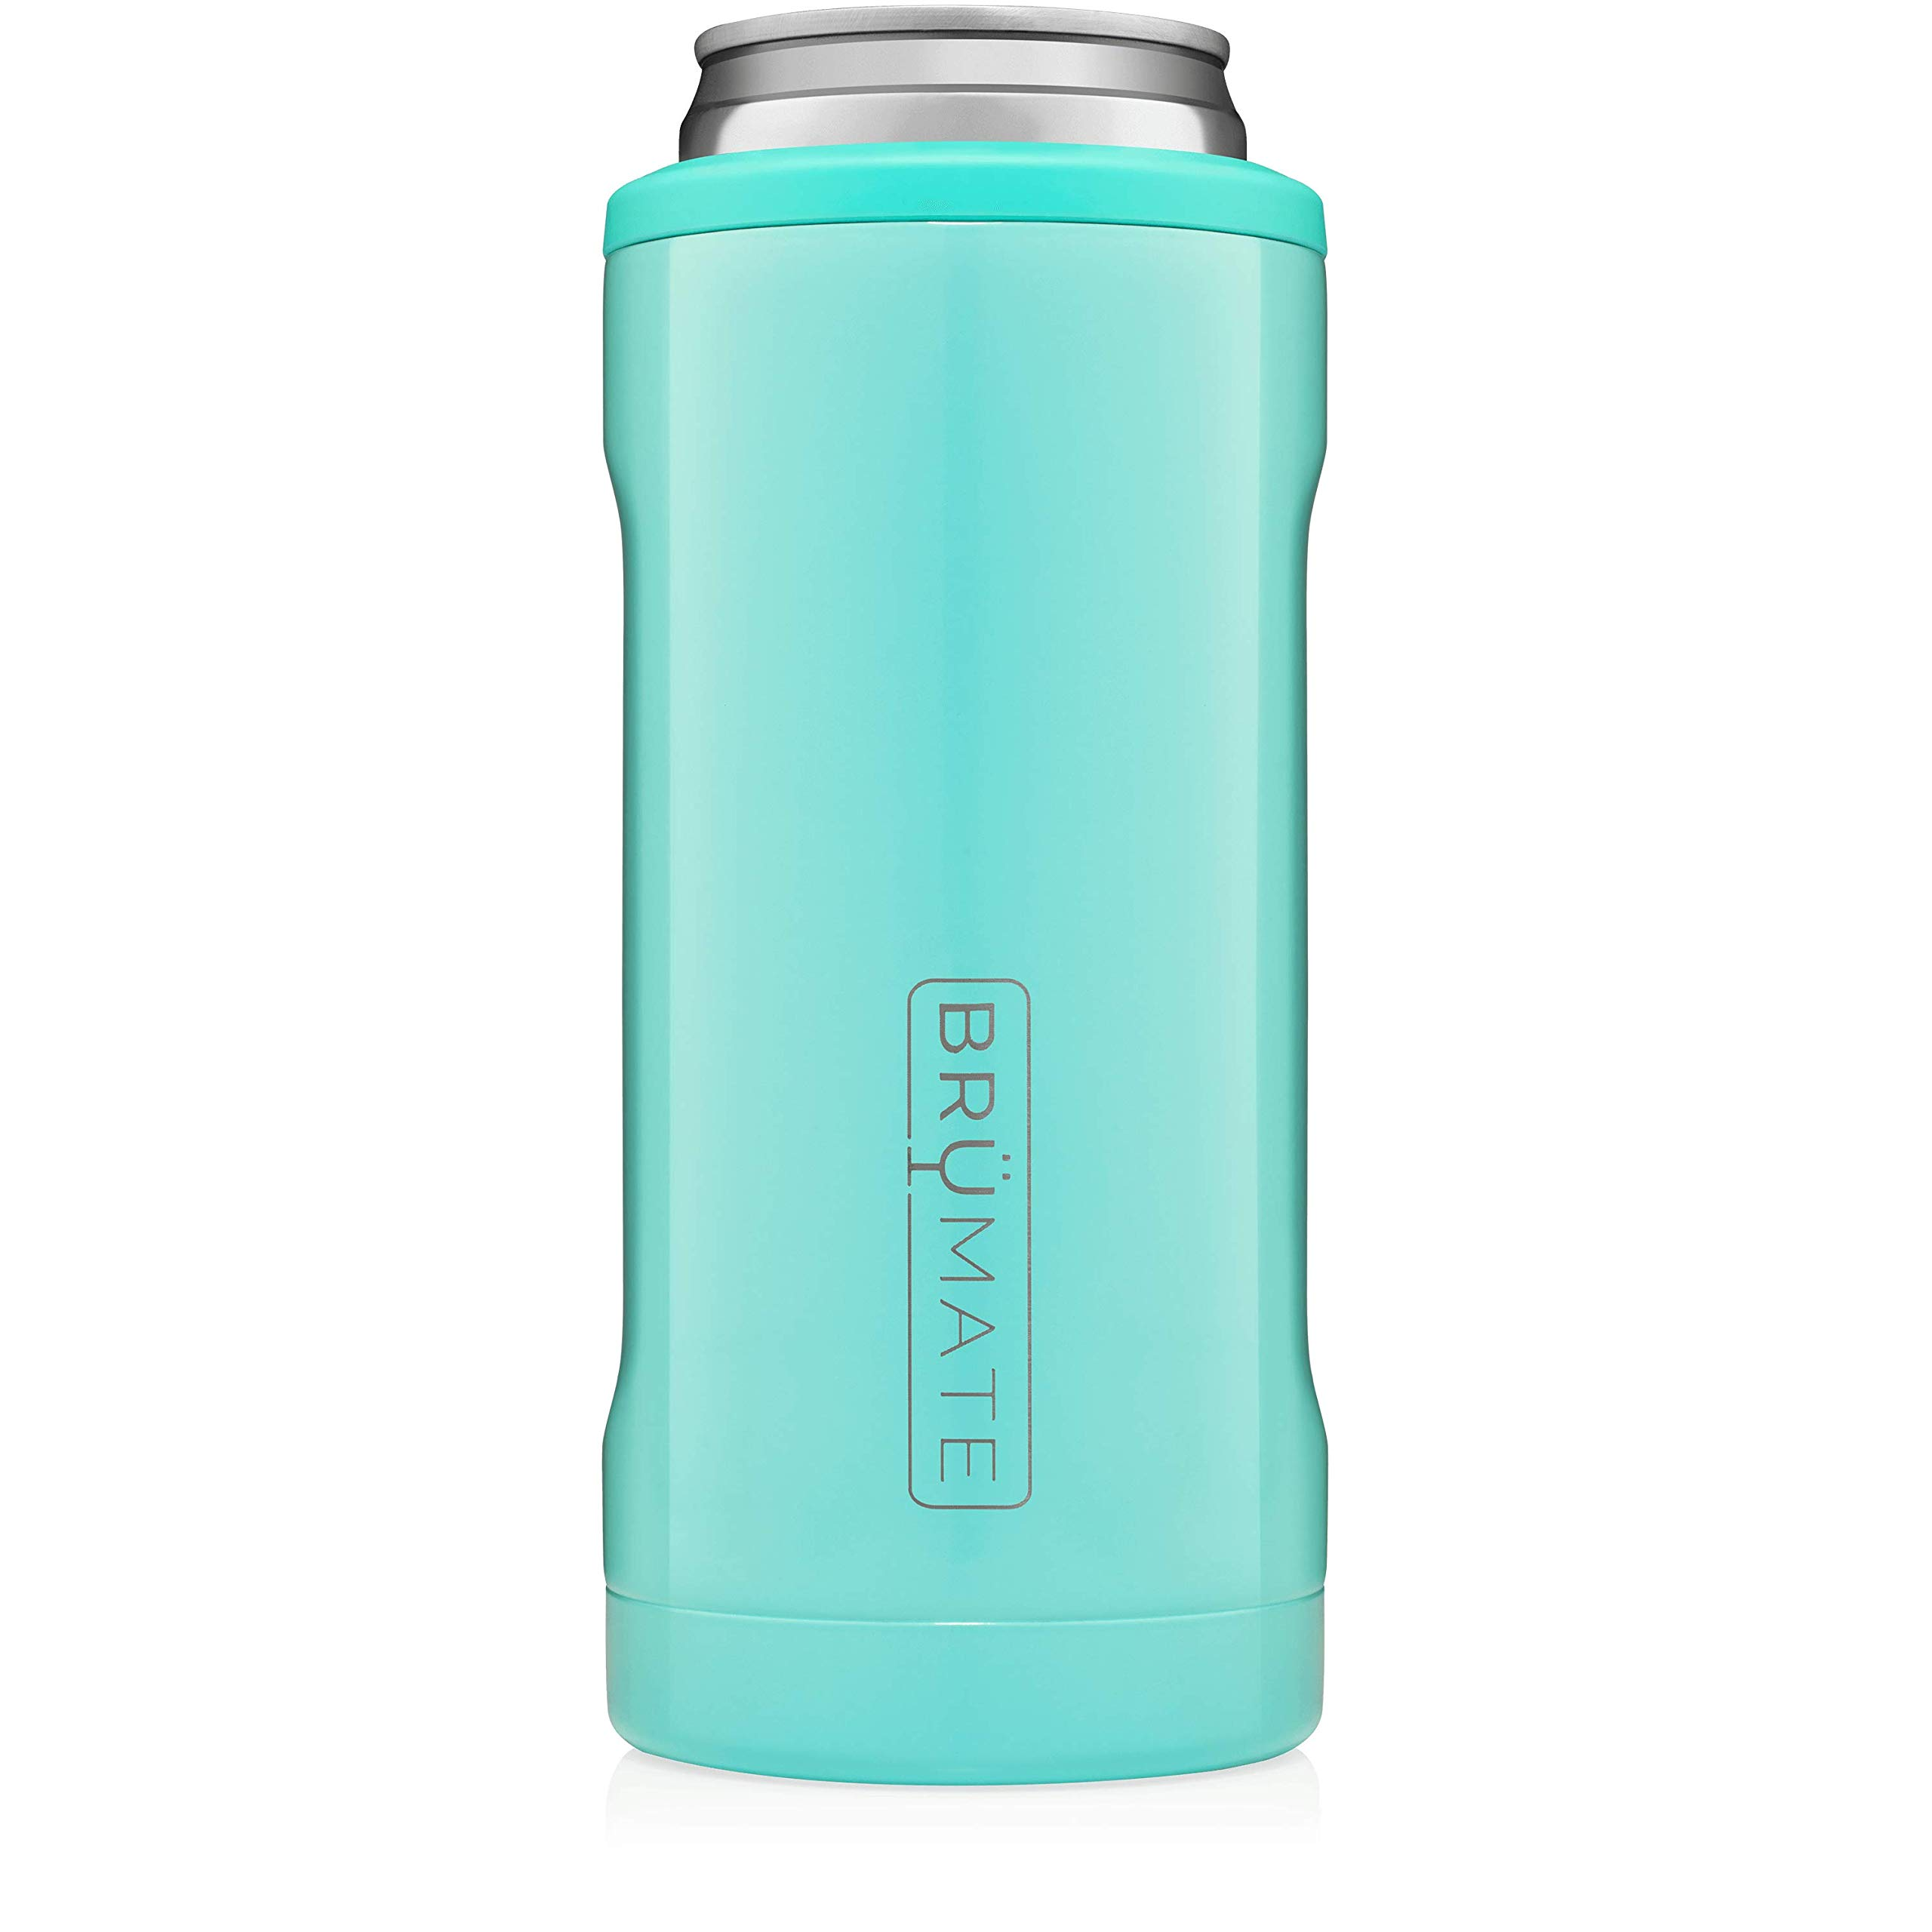 BrüMate Hopsulator Slim Double-walled Stainless Steel Insulated Can Cooler for 12 Oz Slim Cans (Aqua) by BrüMate